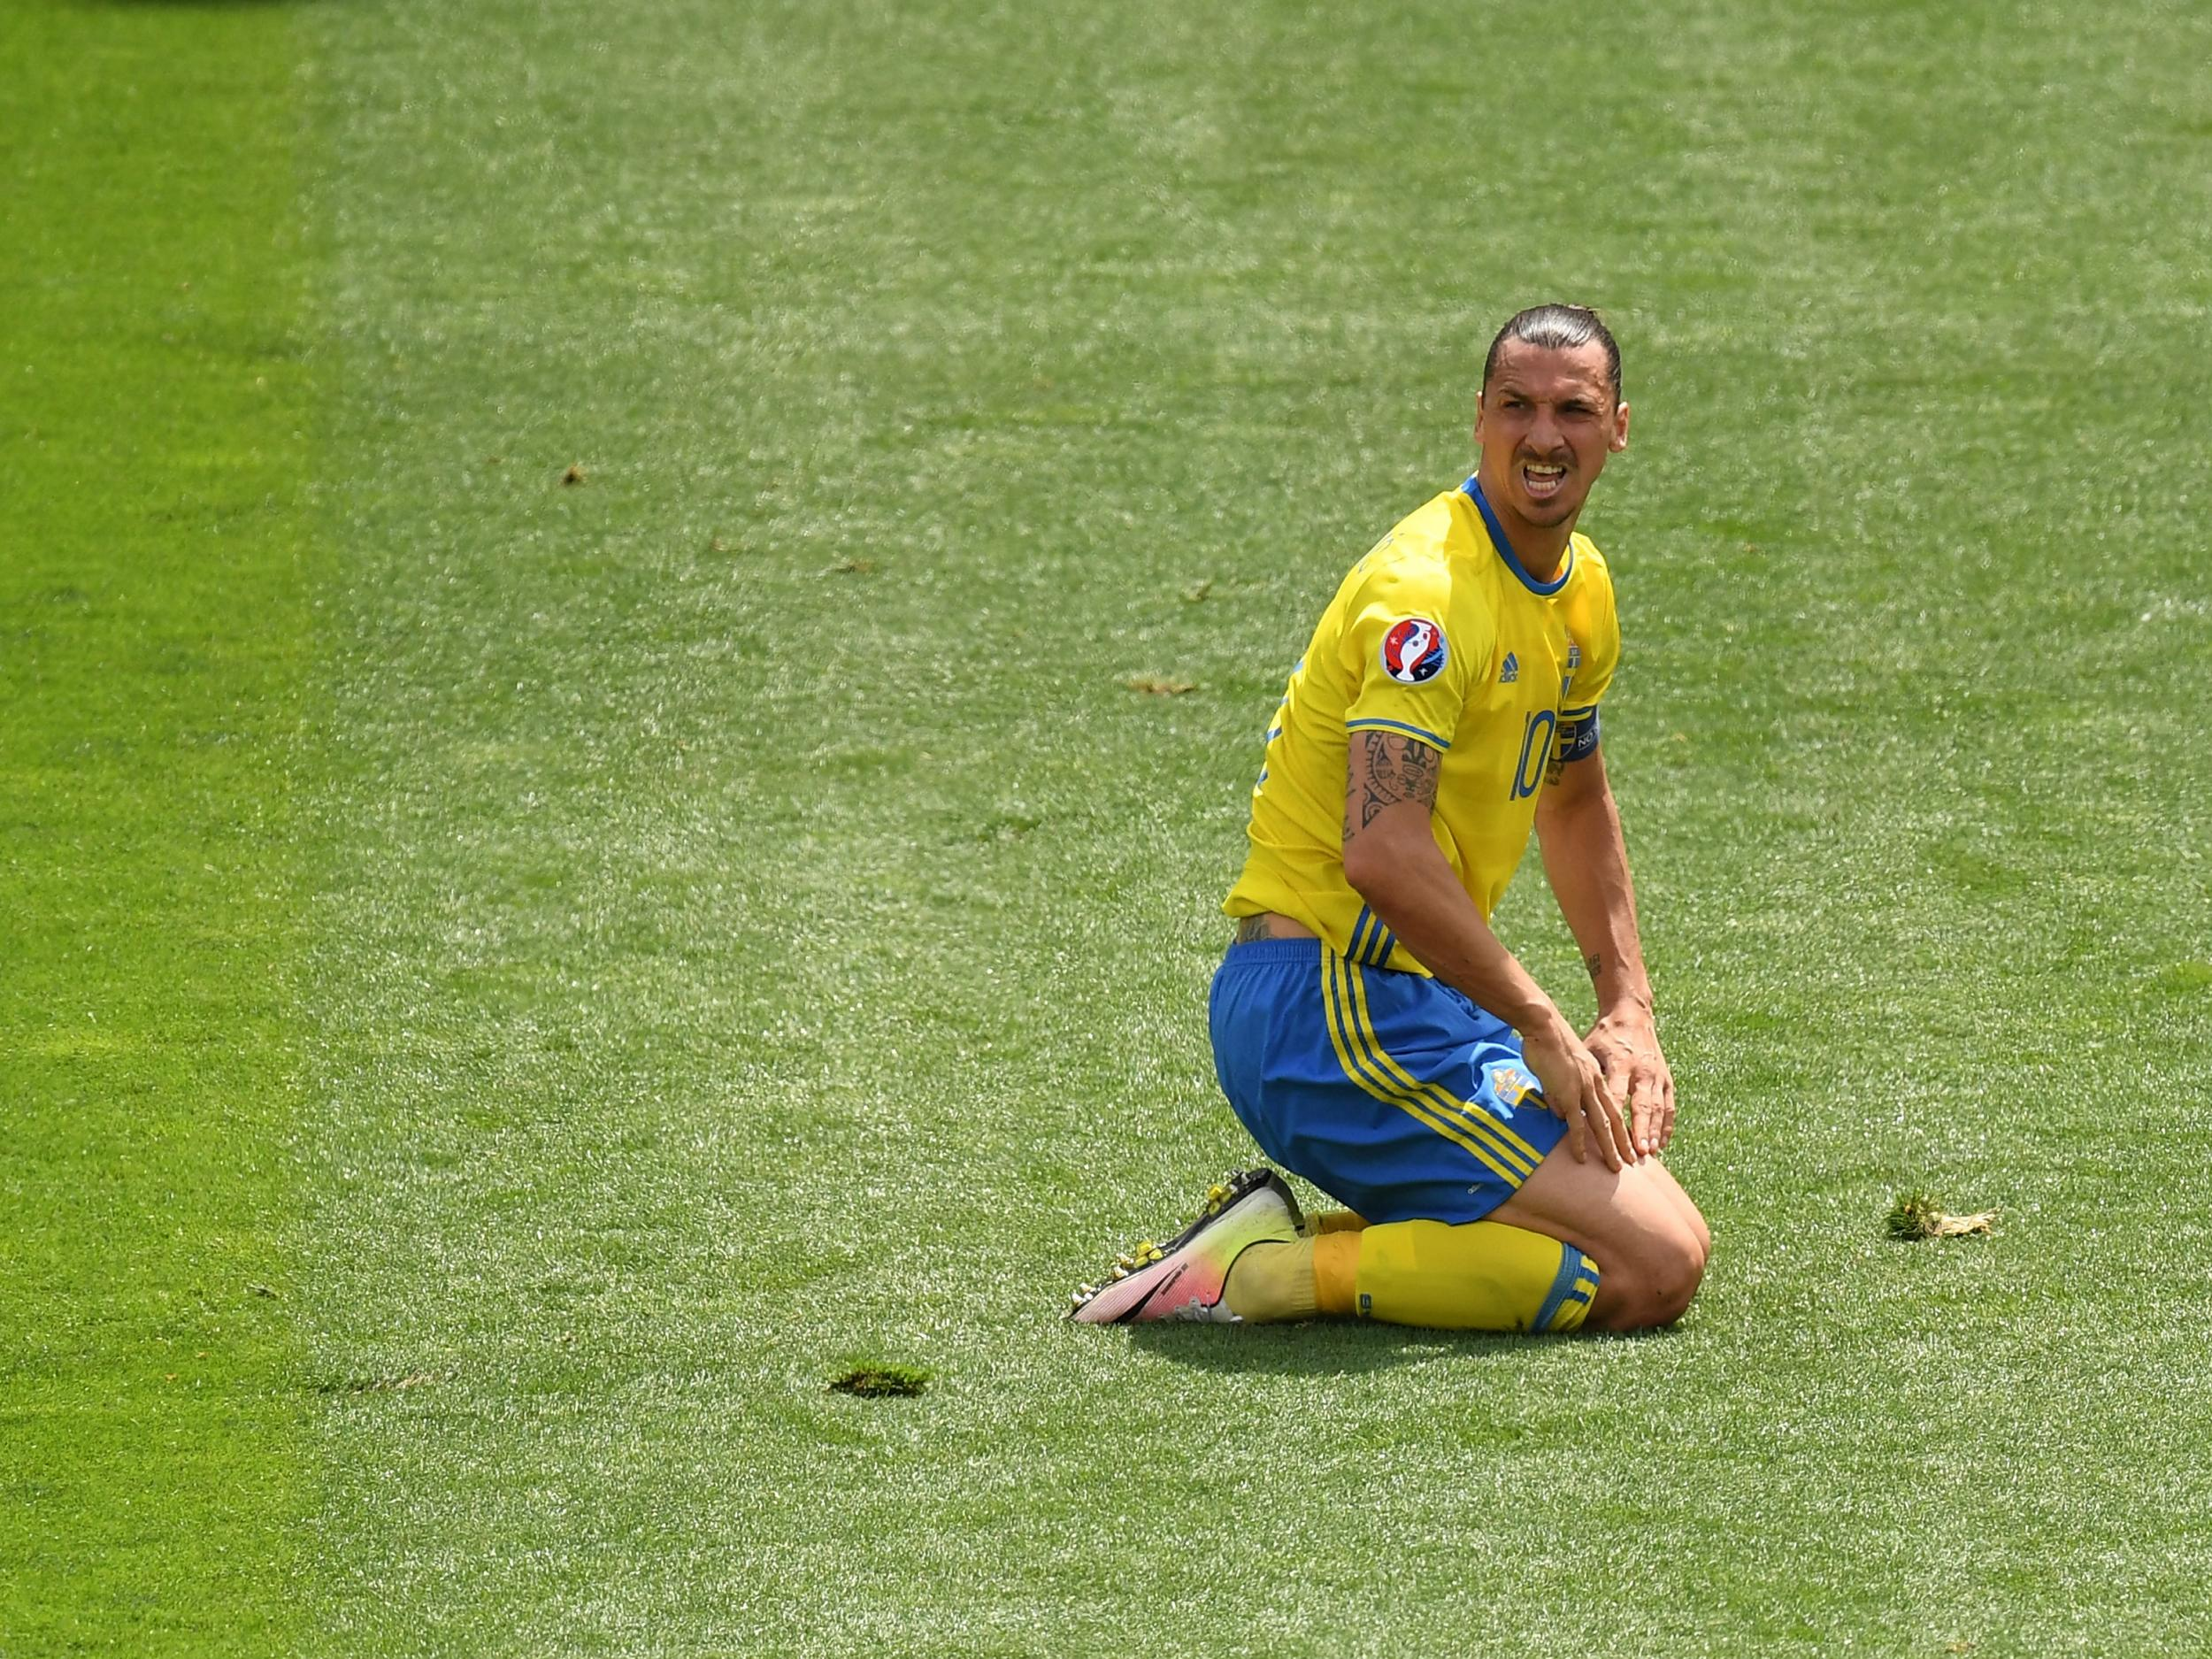 Zlatan Ibrahimovic's misery continues as Swedish fans turn their back on all-time record goalscorer